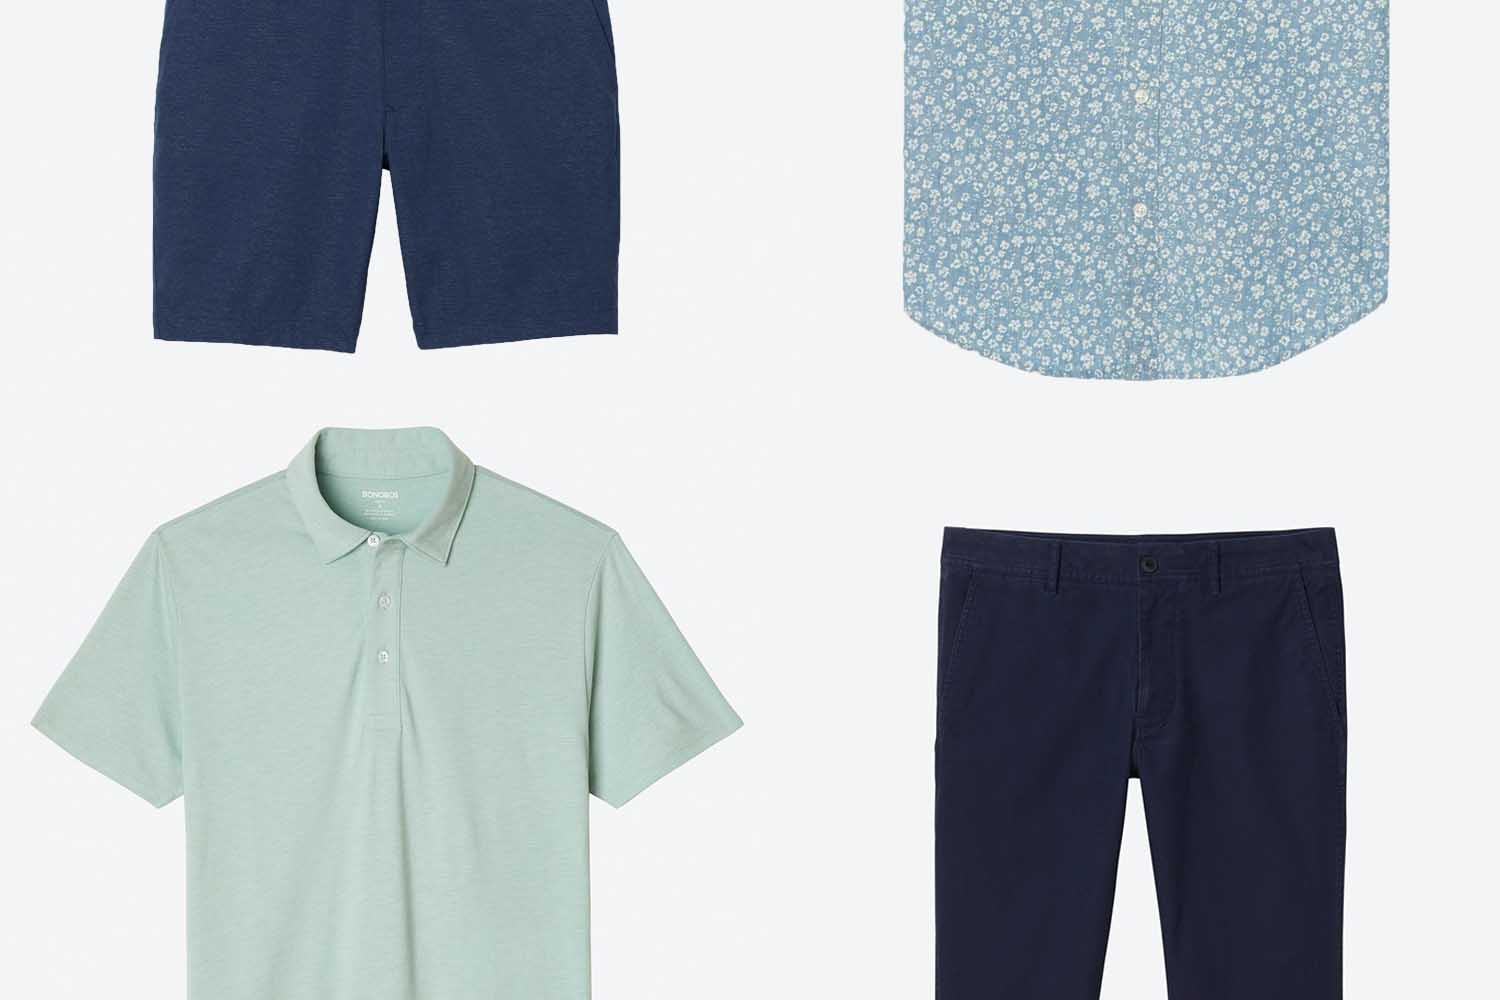 Deal: Take 30% Off Summer Styles at Bonobos